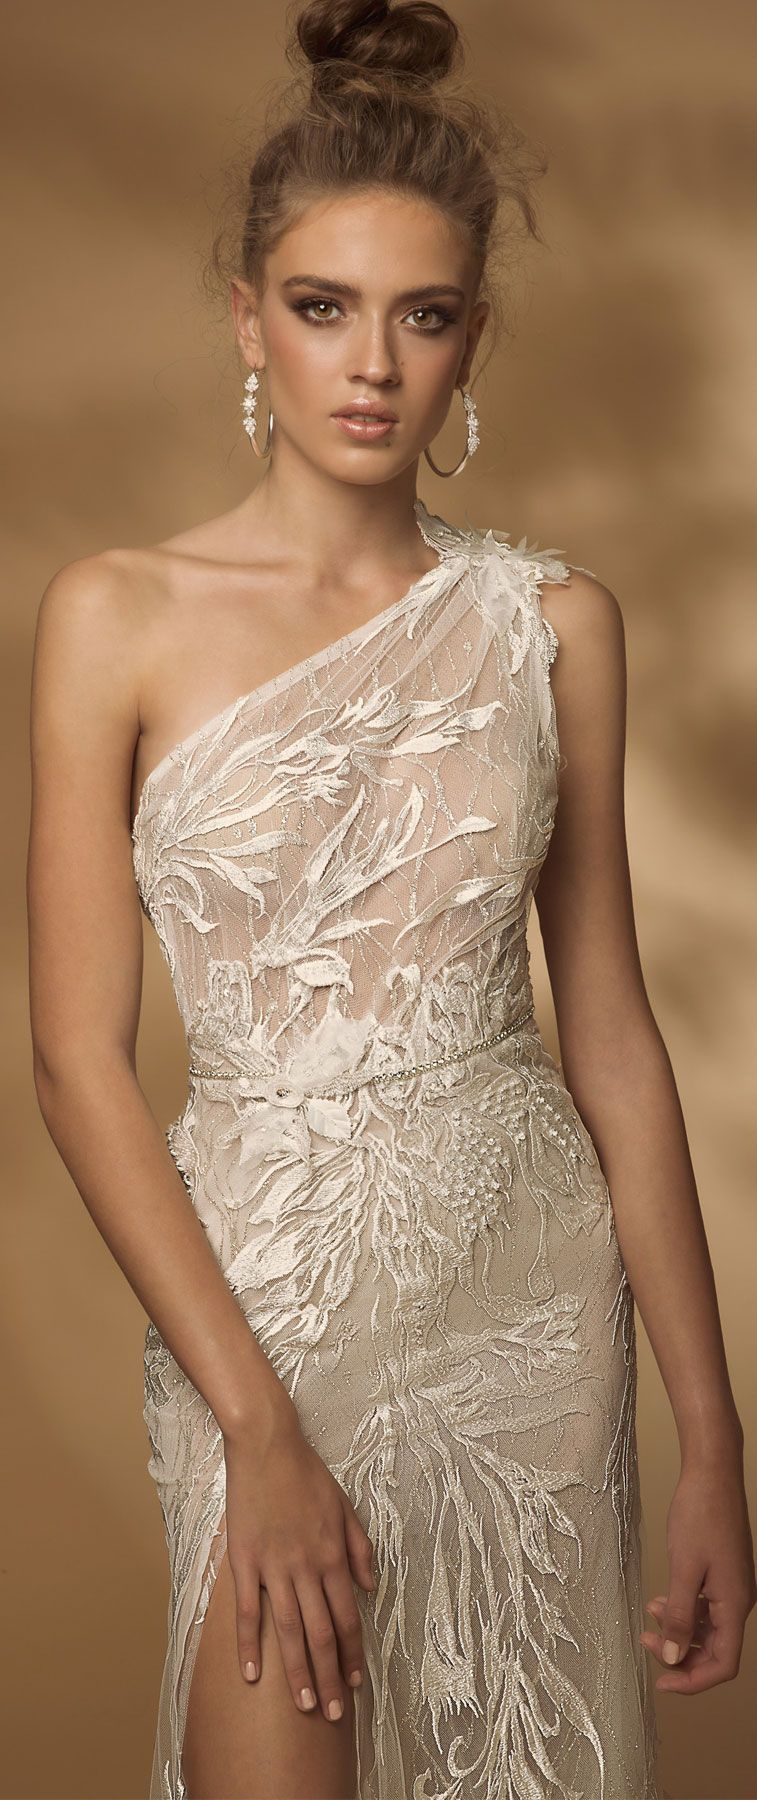 Lior charchy fall wedding dresses clasic pinterest